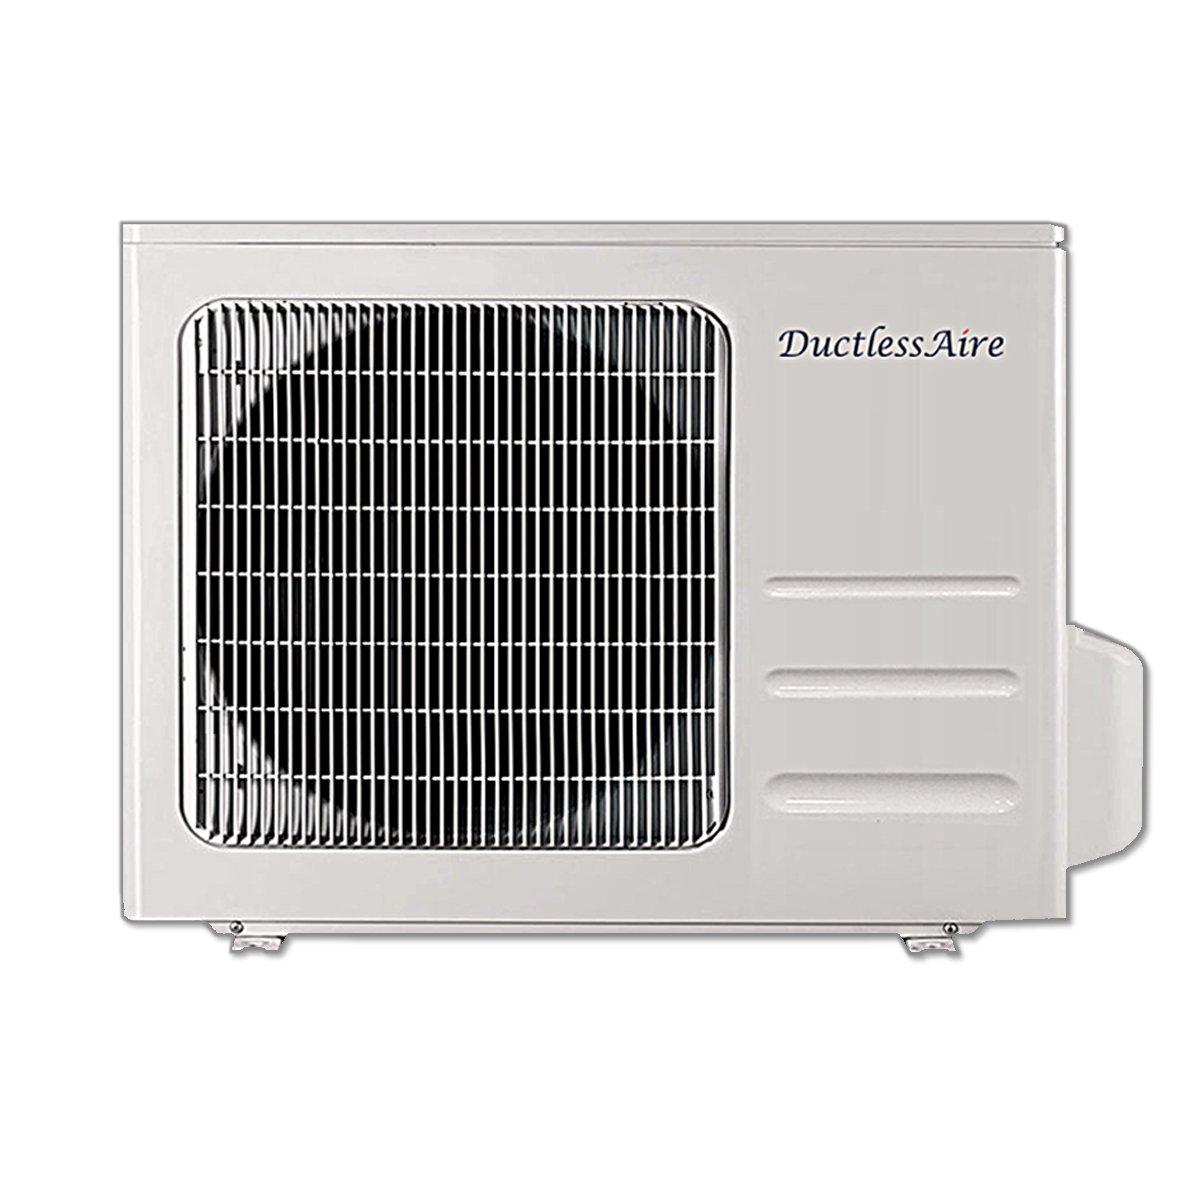 Ductlessaire 24000 Btu 205 Seer Energy Star Ductless Air Conditioner Control Wiring Diagram Mini Split Conditioning And Heat Pump Variable Speed Inverter 220v 25ft Installation